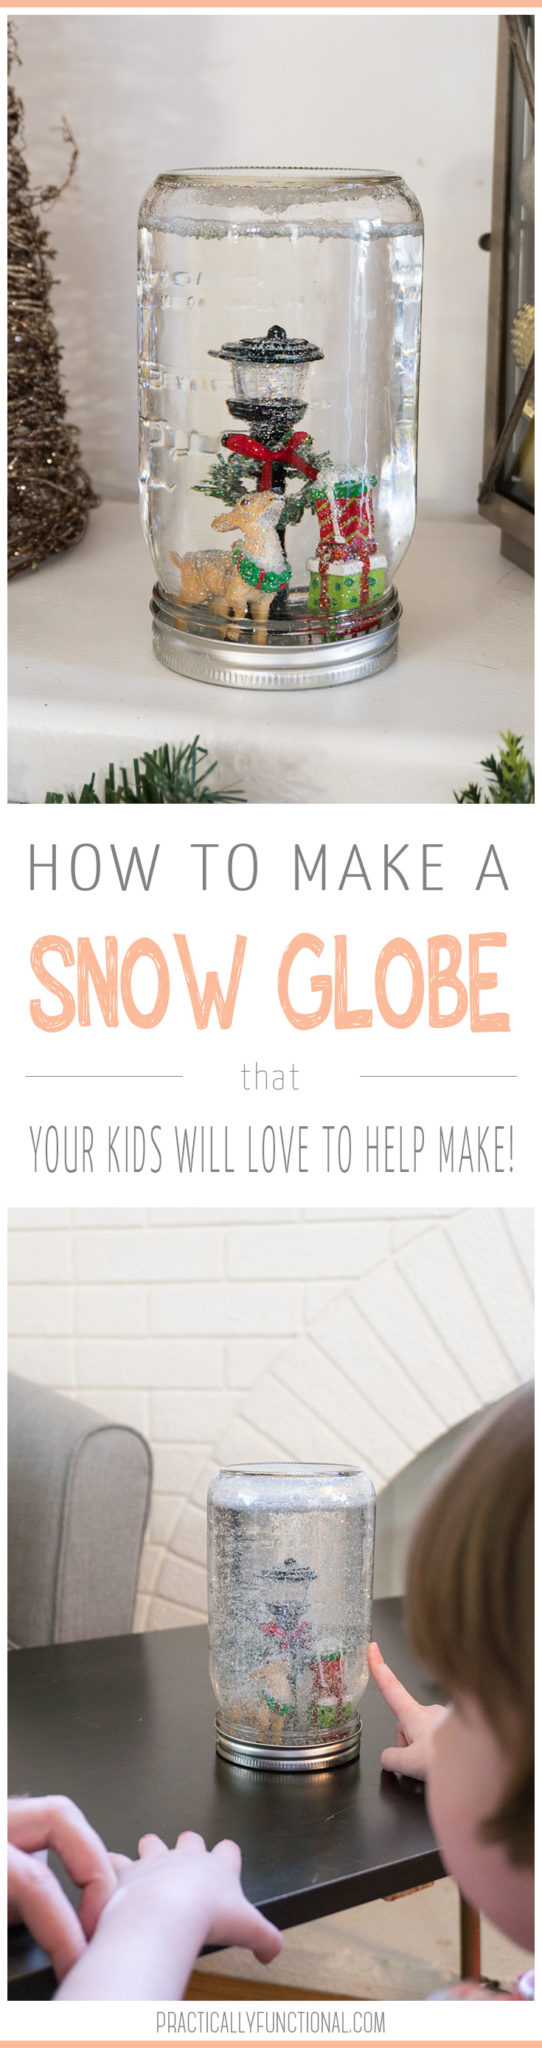 This easy Christmas craft is quick and fun! Learn how to make a snow globe in less than five minutes! This is a fun kid project for the holidays and turns out so pretty!